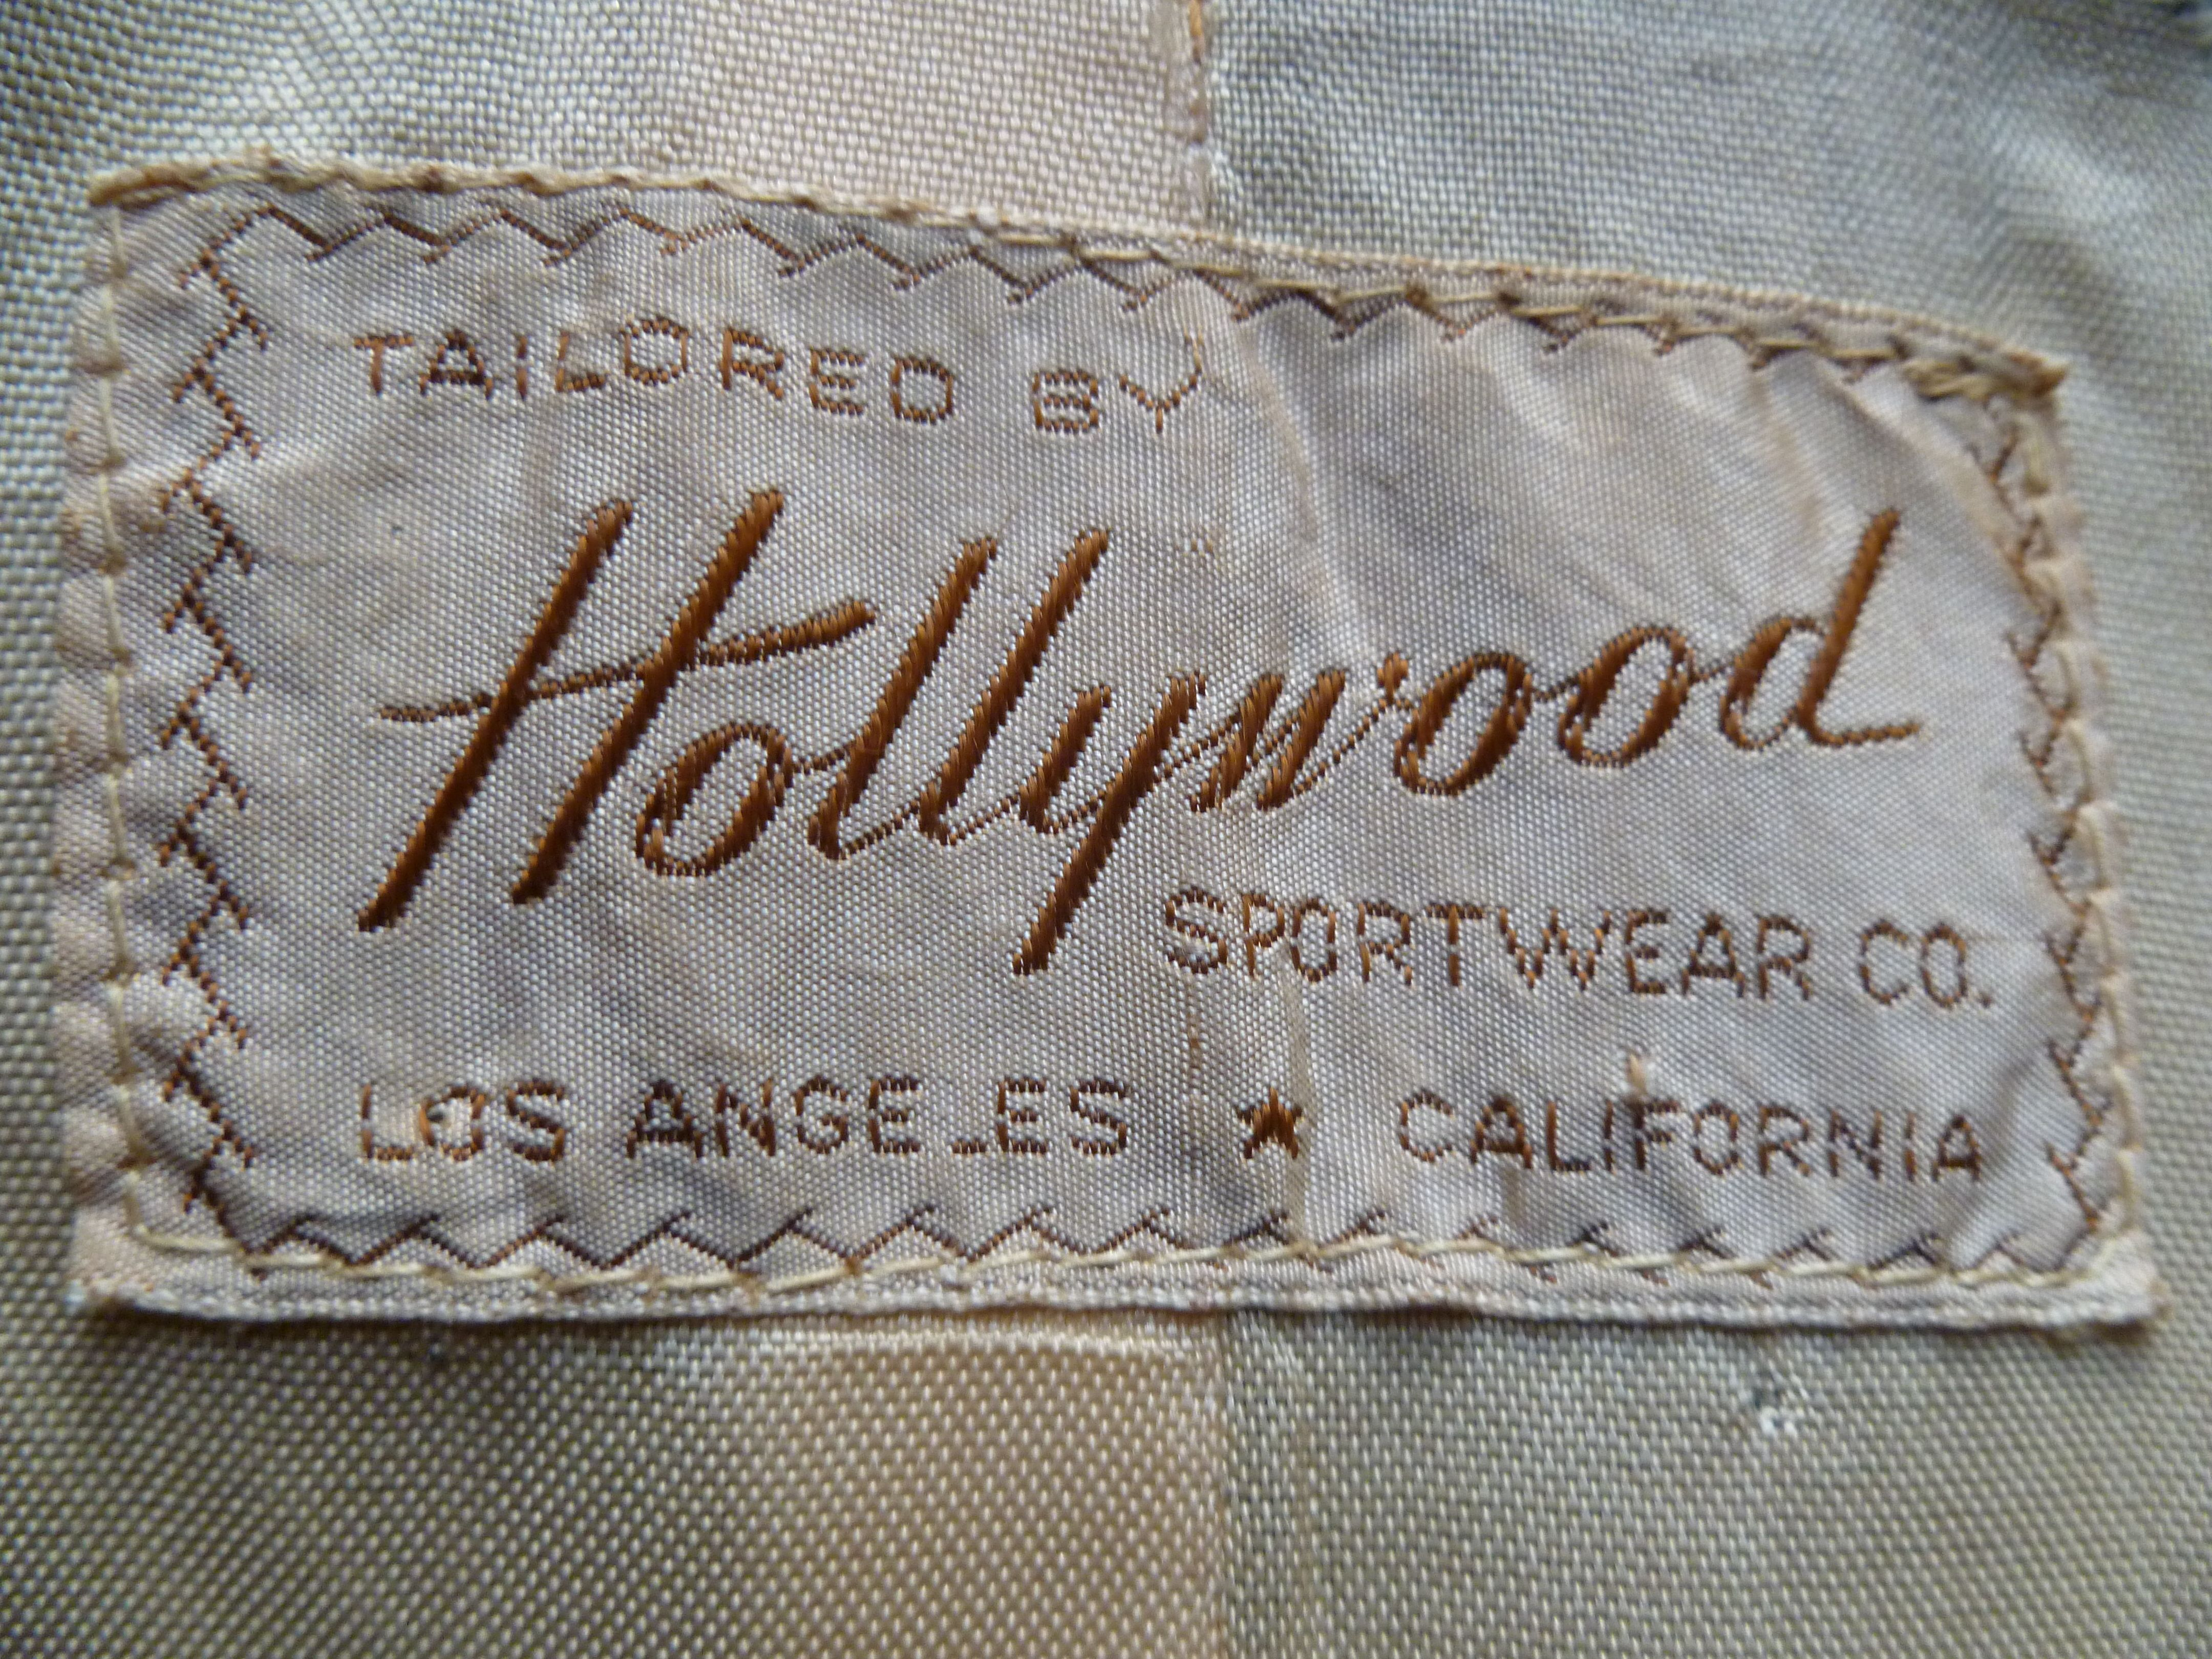 Hollywood Vintage Woven Label Woven Labels Clothing Labels Clothing Tags